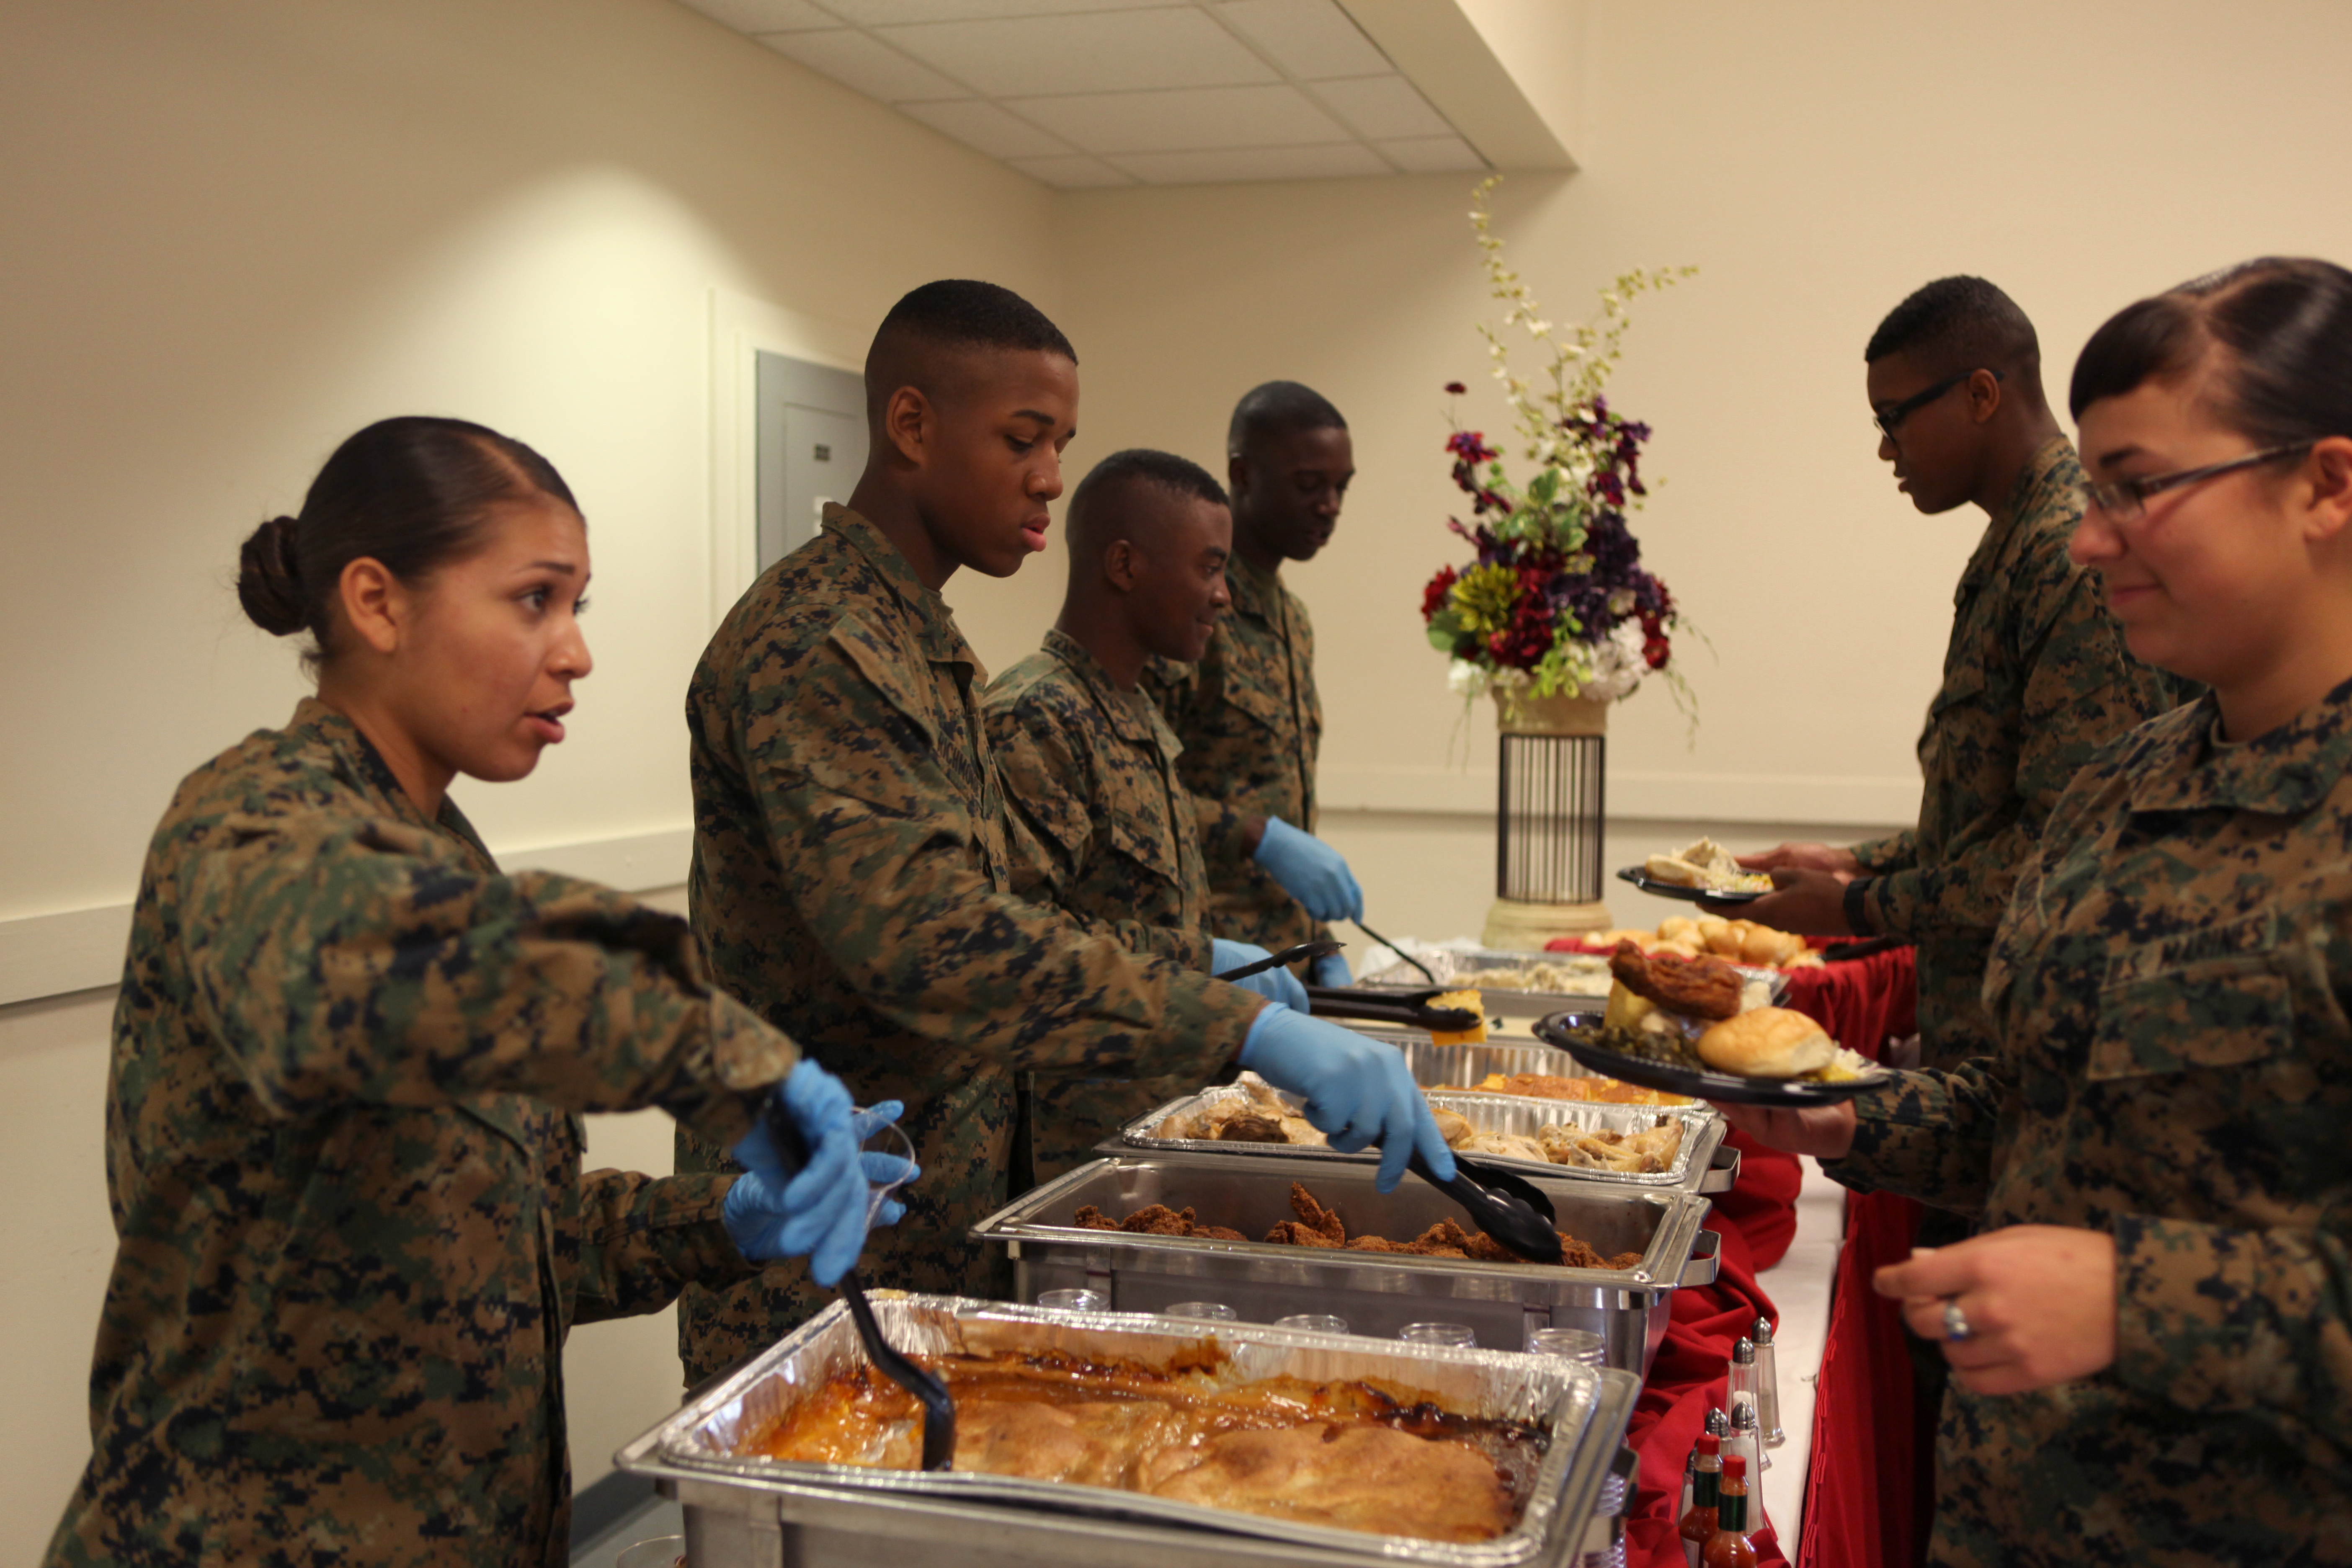 Students of U. S. Marine Corps Combat Service Support Schools serve food to attendees of the Black History Month Closing Ceremony on Camp Johnson, N.C., Feb. 27, 2013.